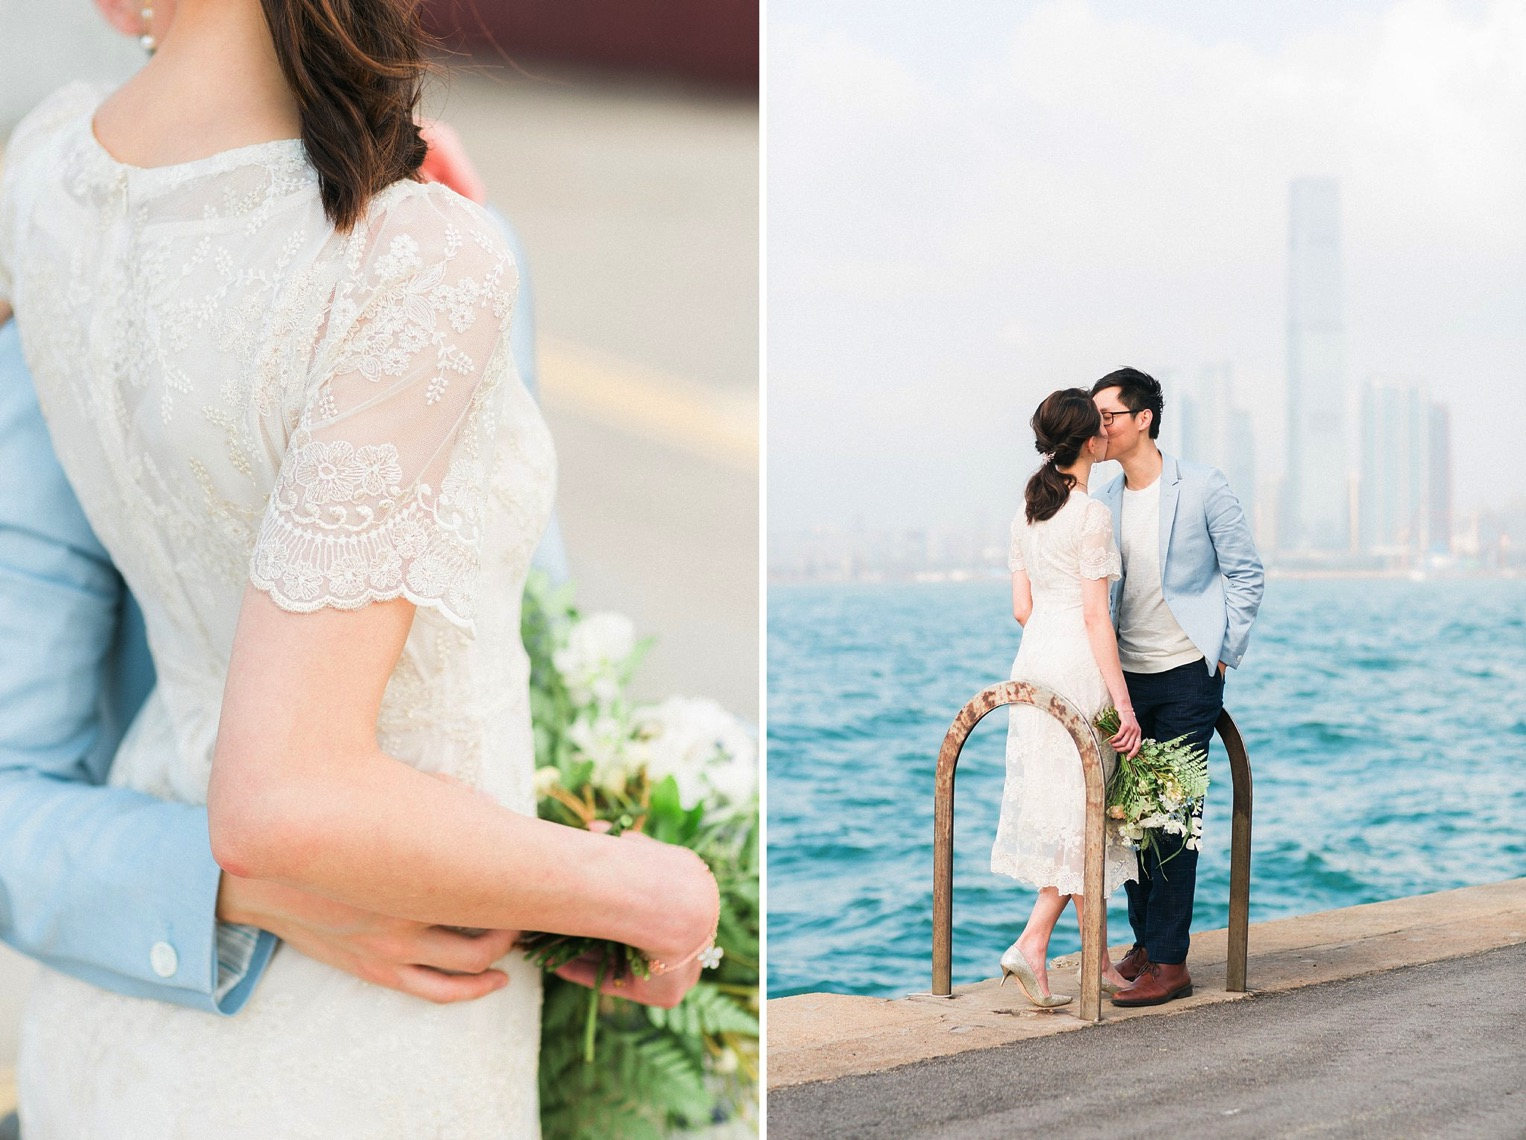 French Grey Photography Hong Kong Prewedding135